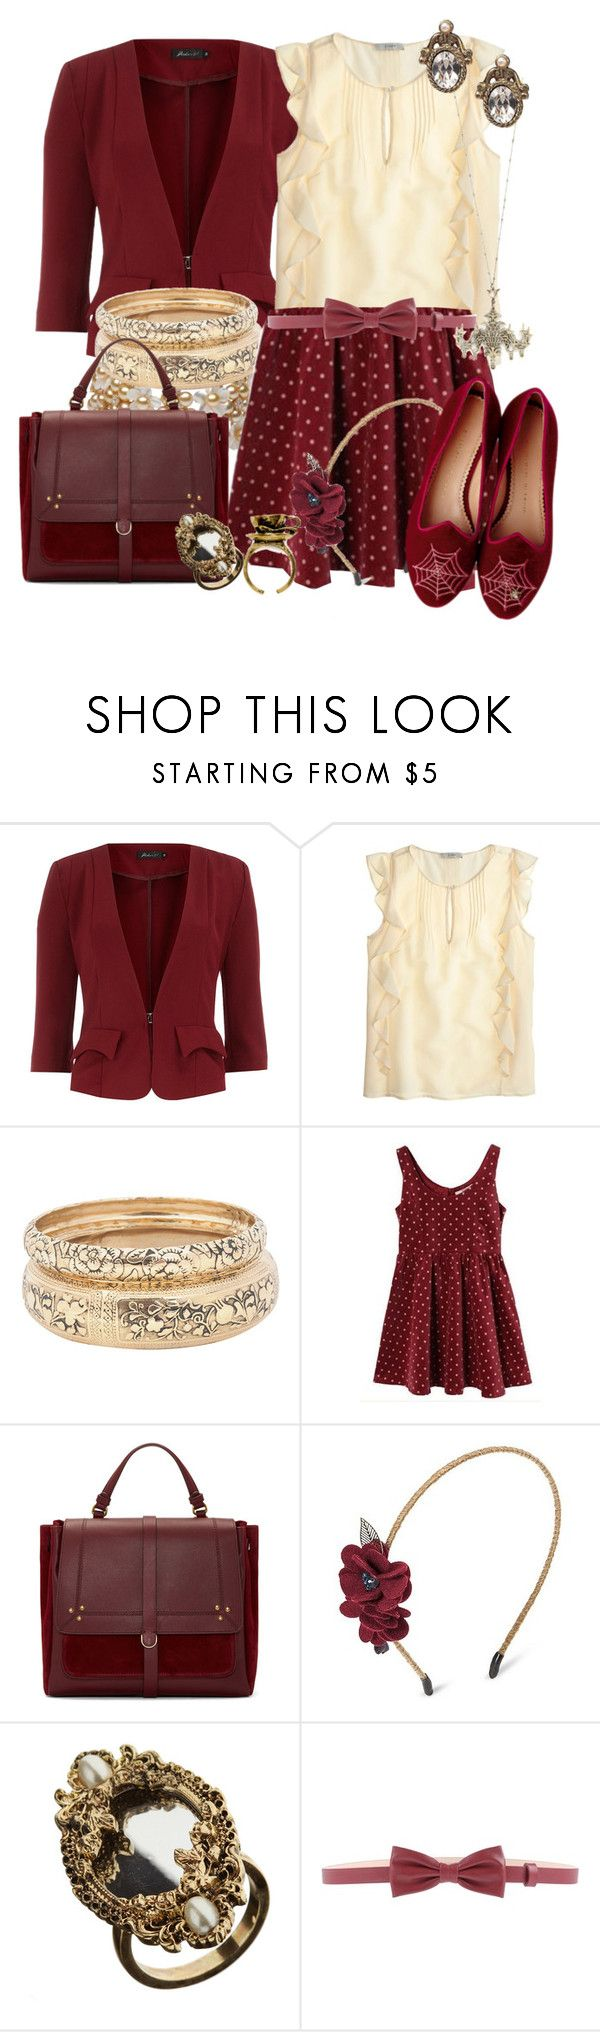 """""""Thornton Hall's Living Room [Ghost of Thornton Hall]"""" by detectiveworkisalwaysinstyle ❤ liked on Polyvore featuring Dorothy Perkins, J.Crew, Forever 21, Jérôme Dreyfuss, Capsule By Cara, Miss Selfridge, Charlotte Olympia, Viktor & Rolf and living room"""